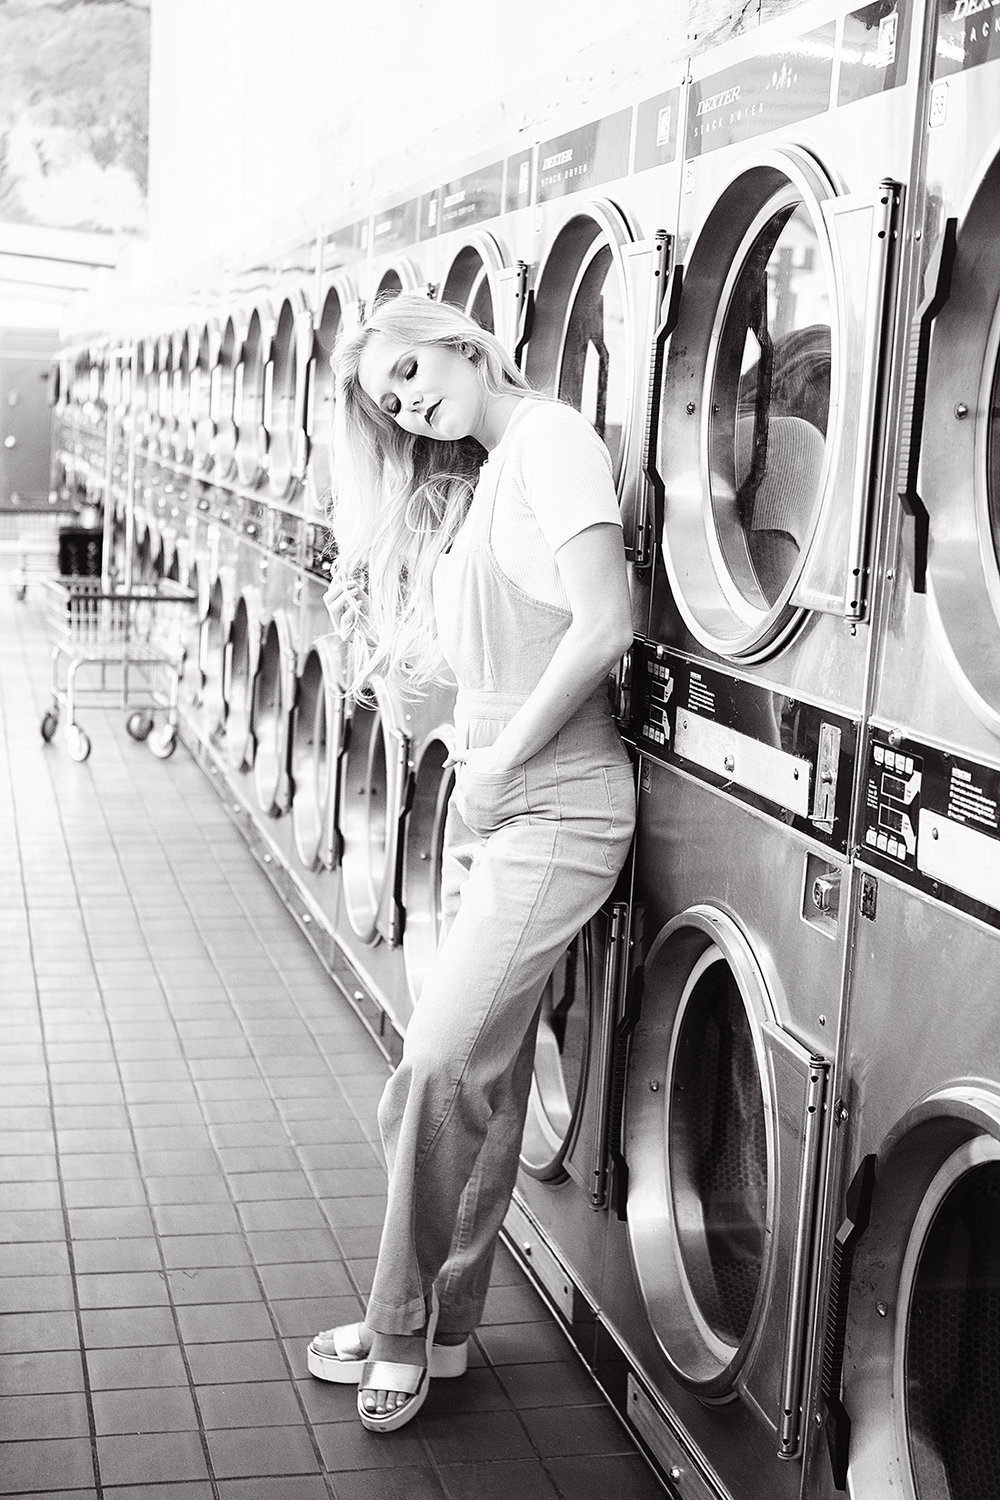 laundromat editorial senior pictures - christina ramirez photography 020